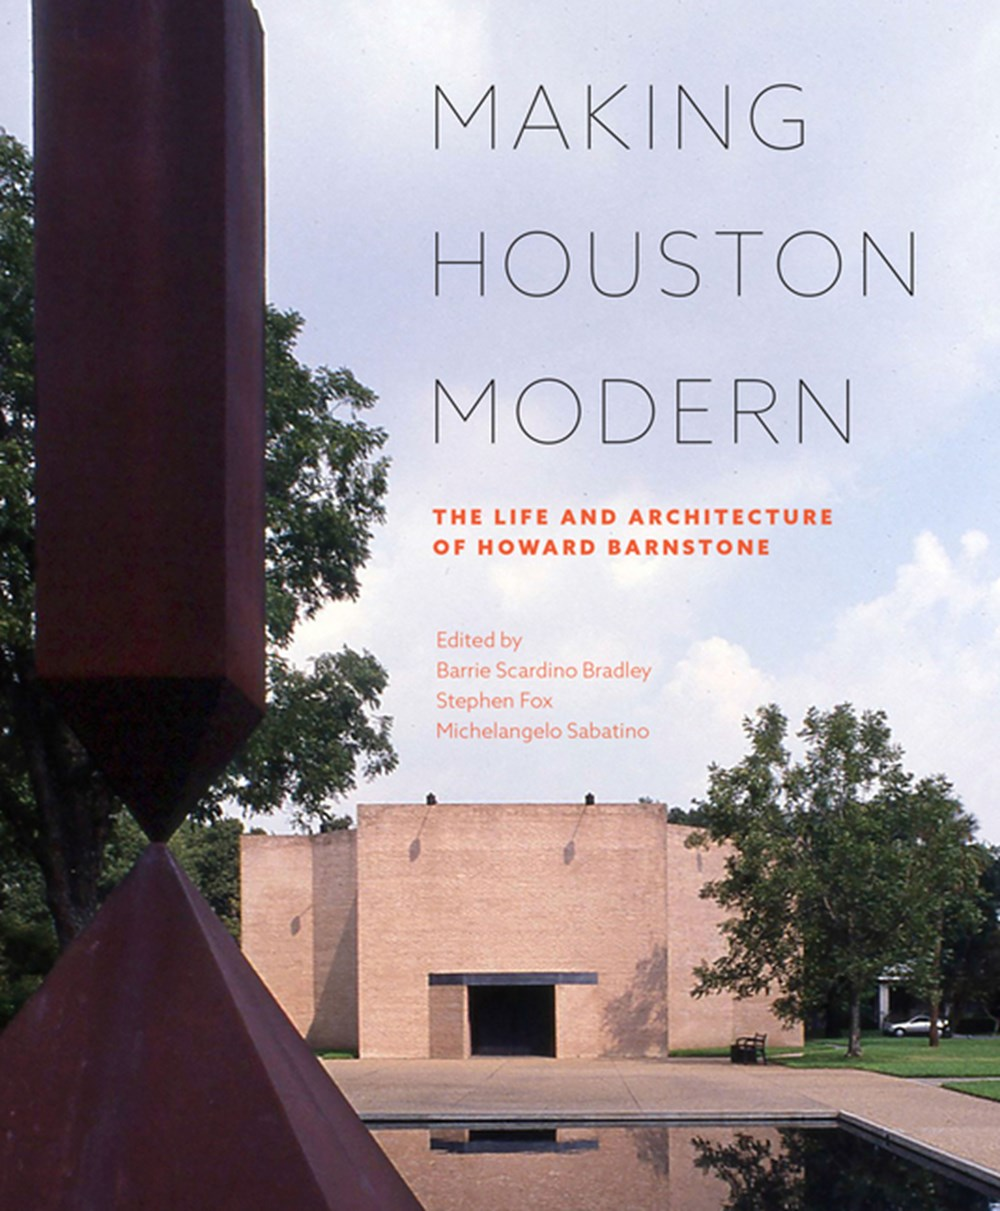 Making Houston Modern The Life and Architecture of Howard Barnstone